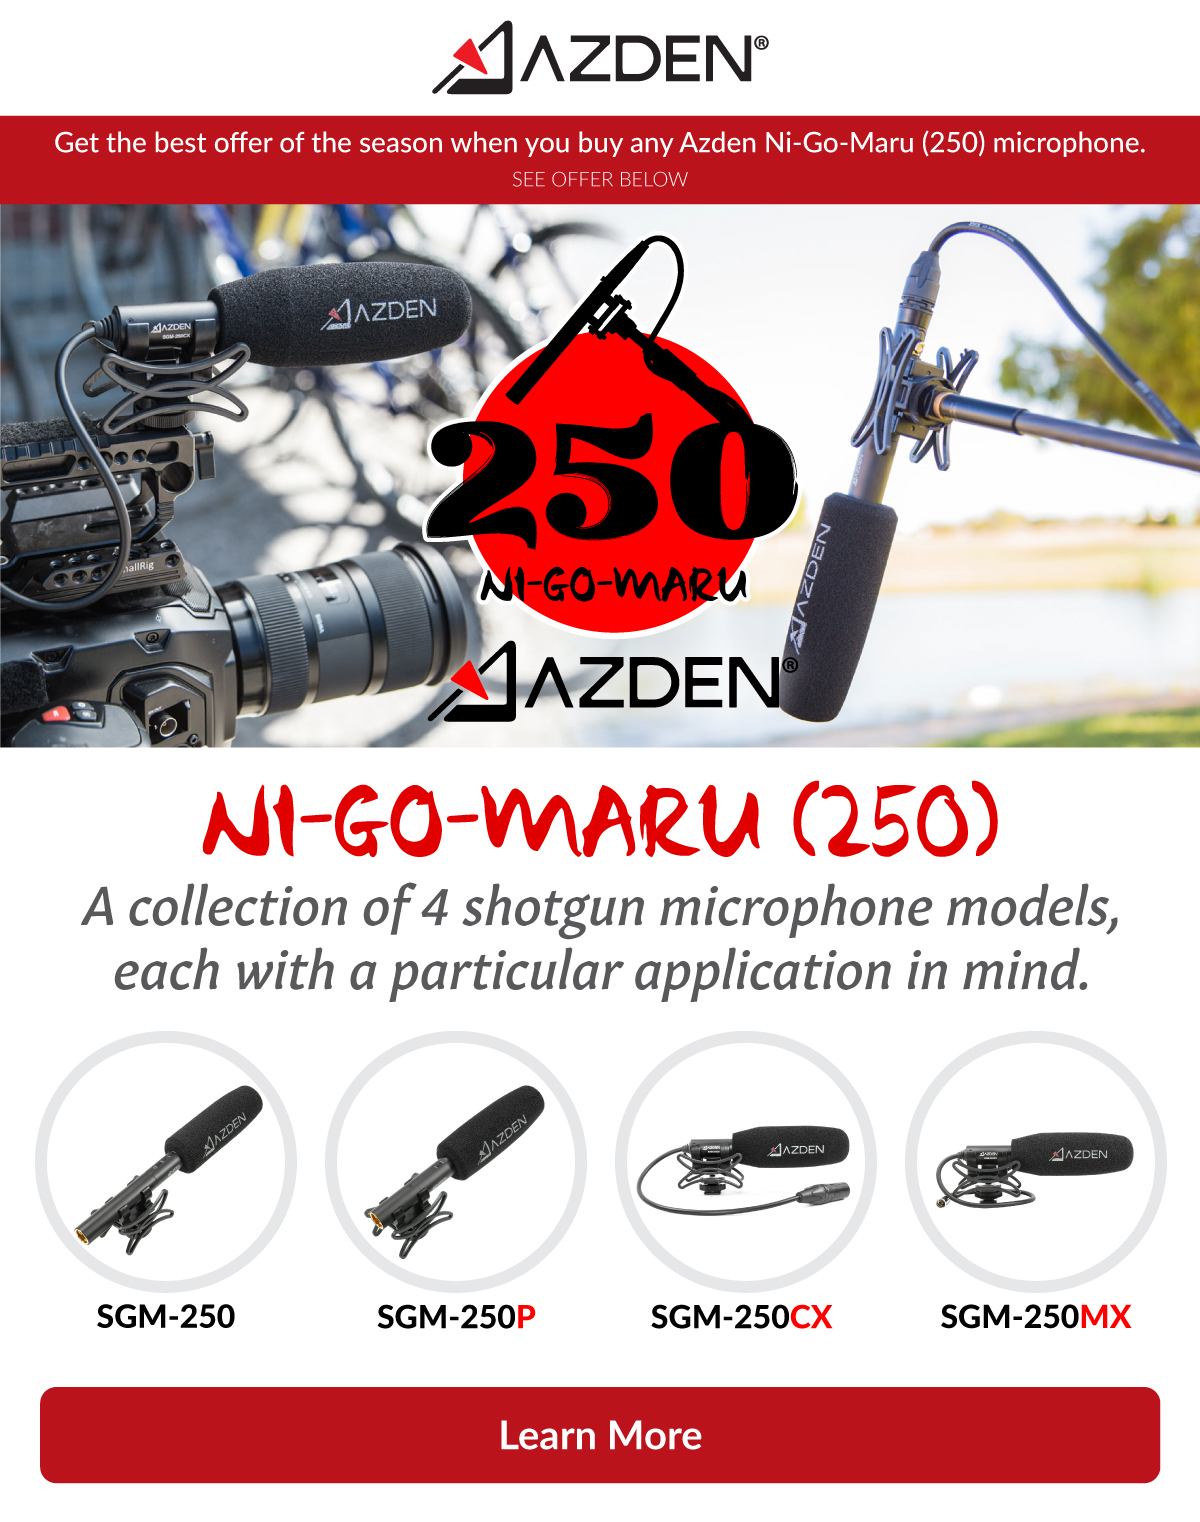 Get the best offer of the season when you buy any Azden Ni-Go-Maru (250) microphone. A collection of 4 shotgun microphone models, each with a particular application in mind.